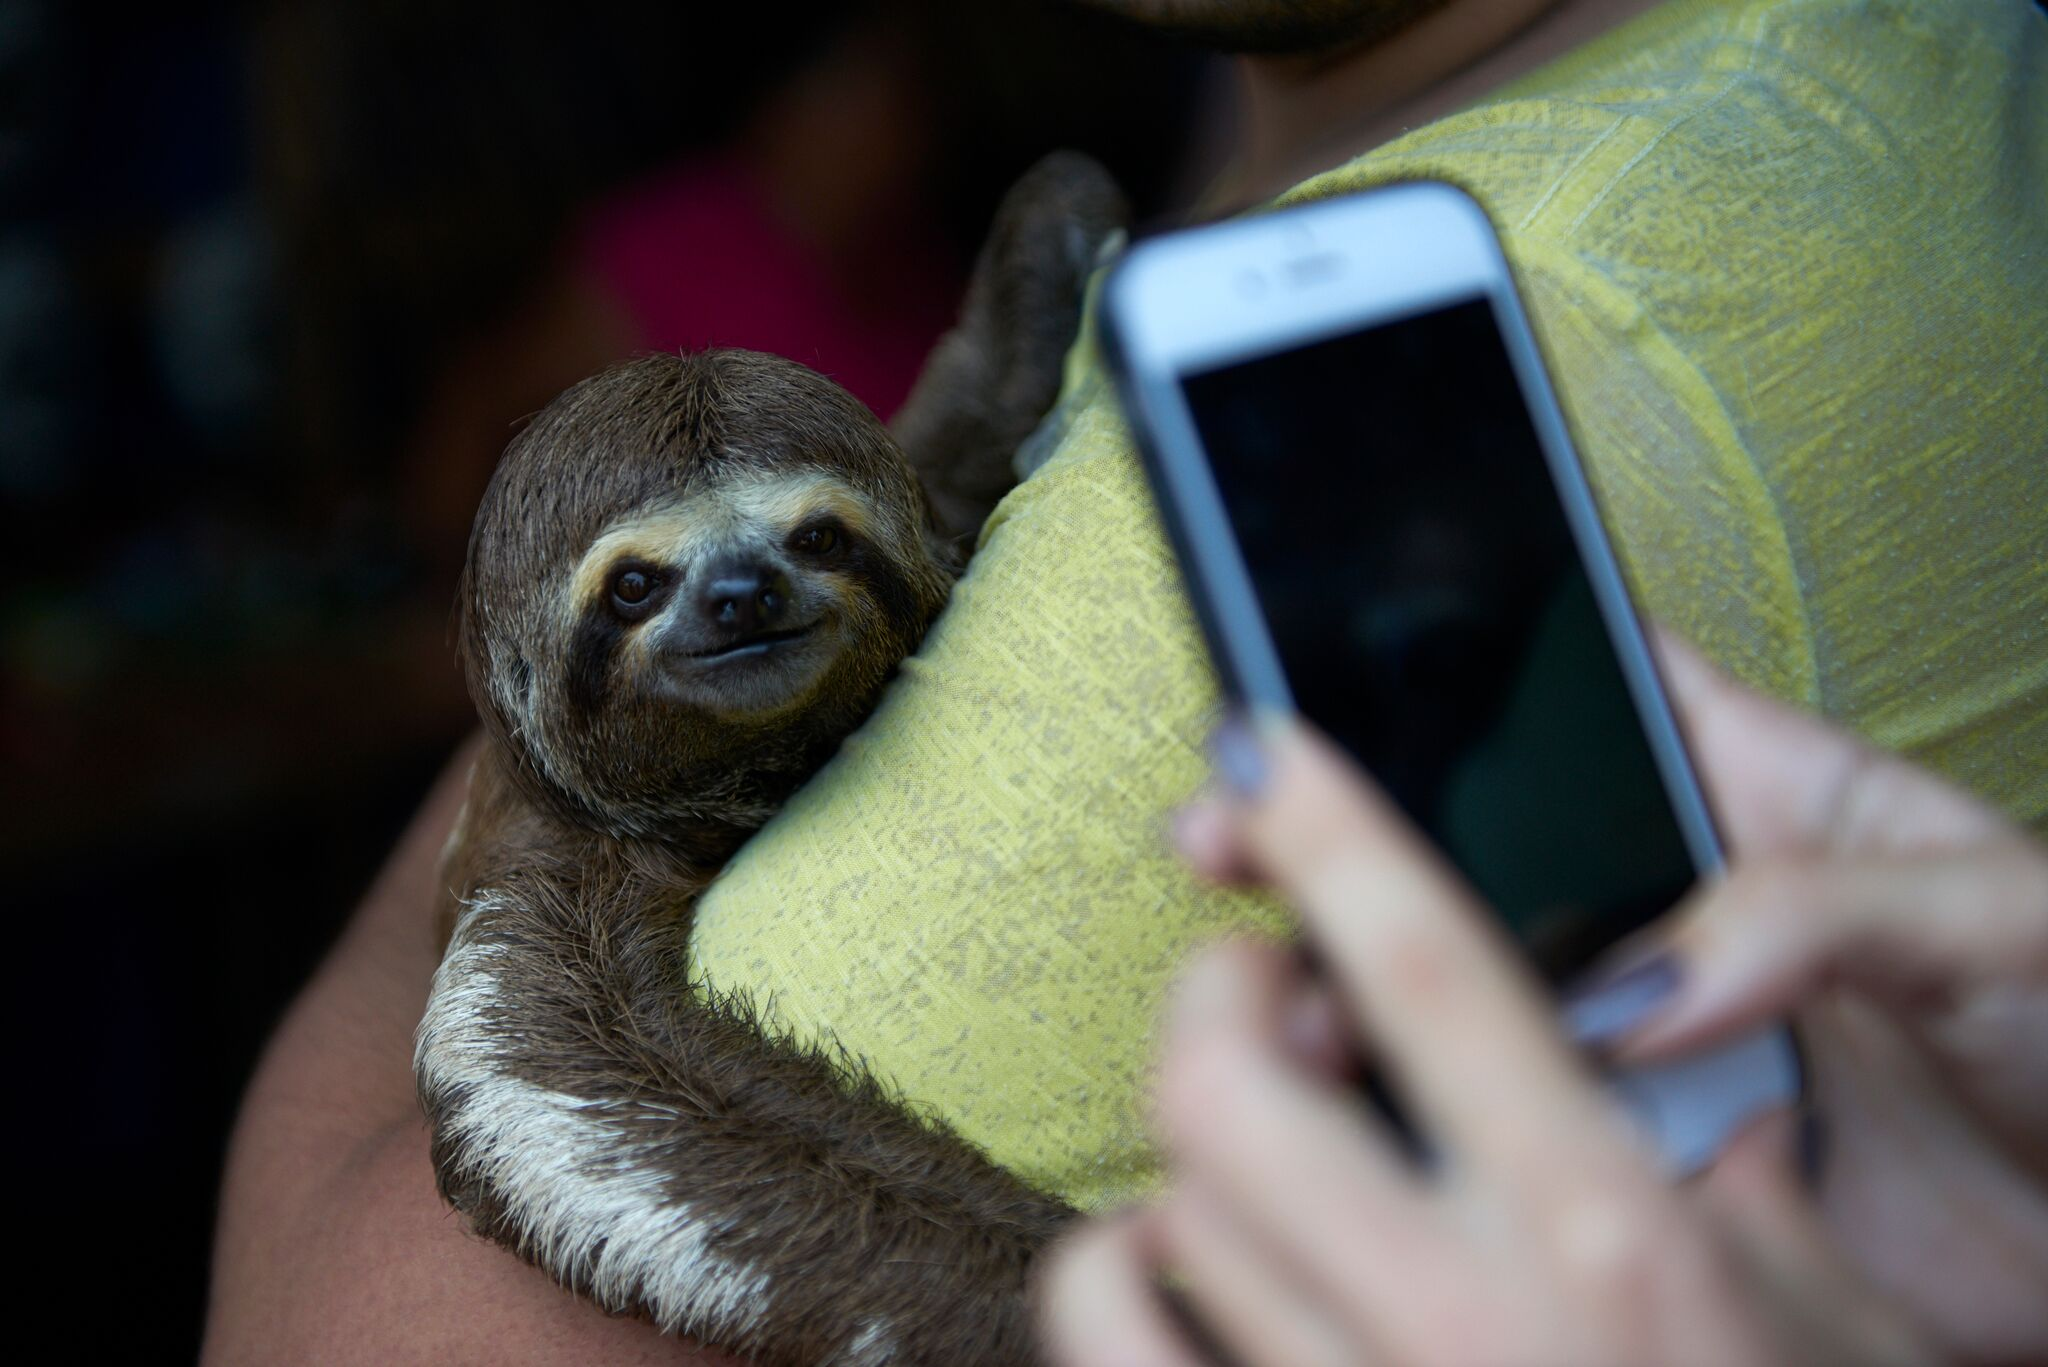 Taking a photo of a sloth